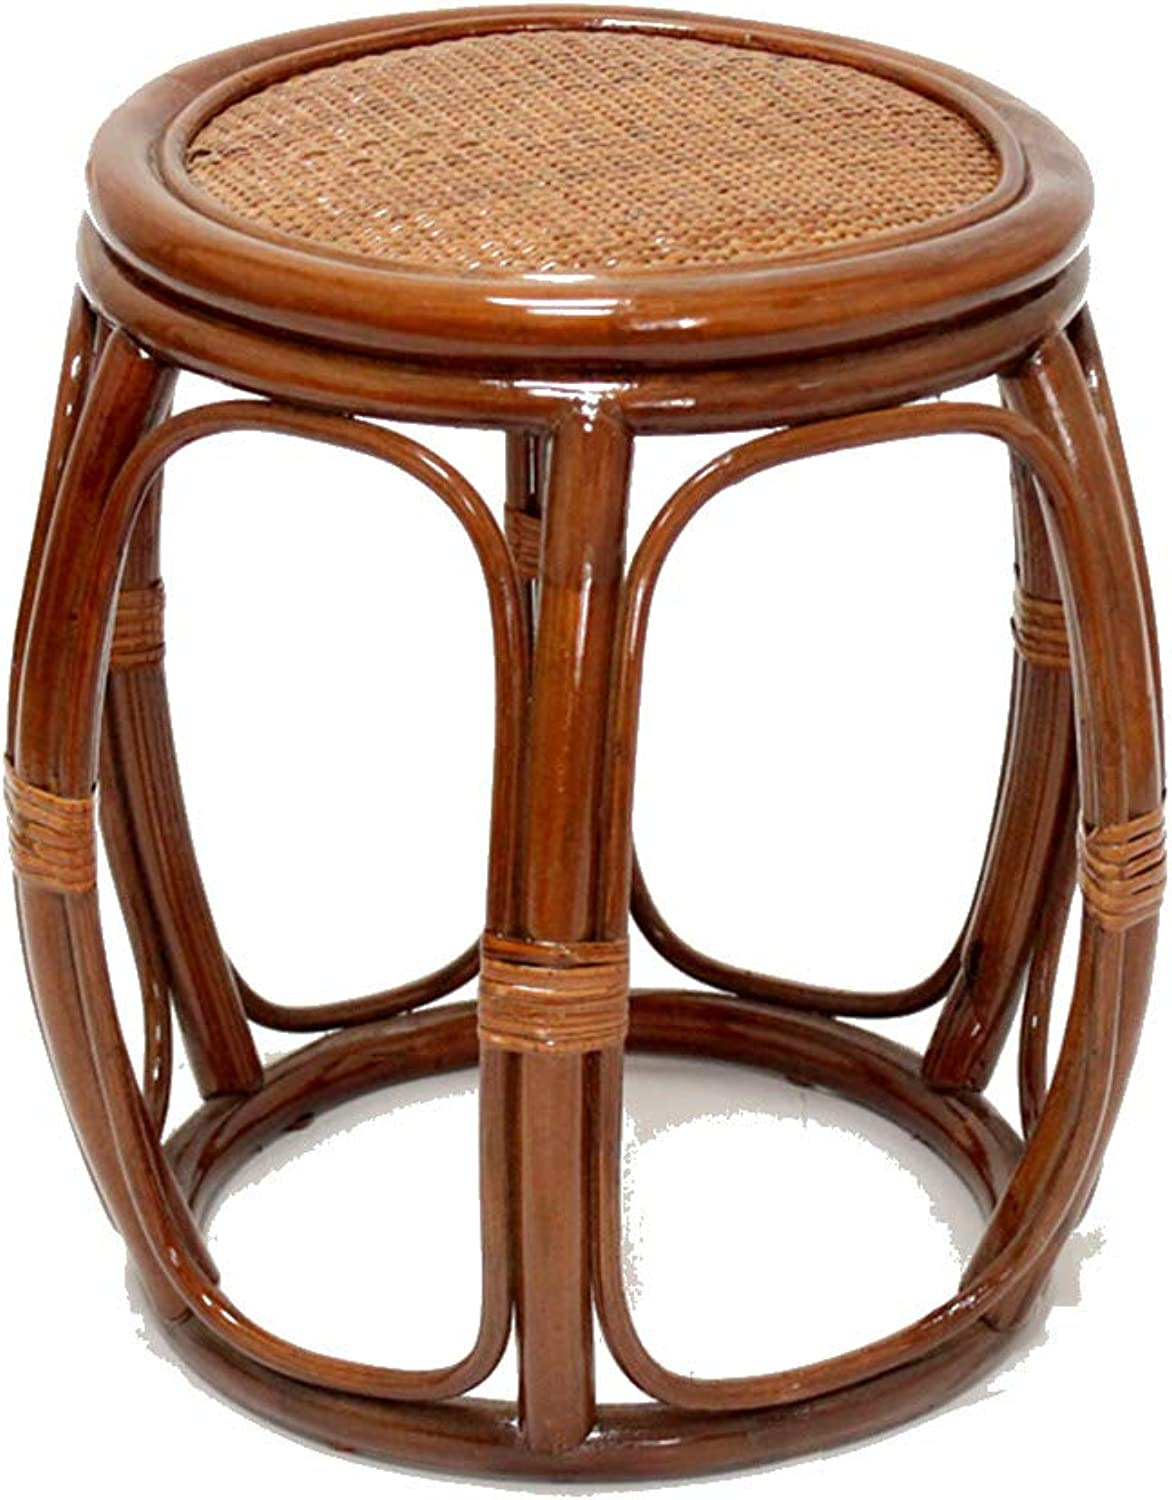 Stools Footstool Work Stool Step Stool Hand-Woven Small Short Round Stool Natural Plant Vine Environmental Predection Drum Stool Change shoes Tingting (color   Brown)